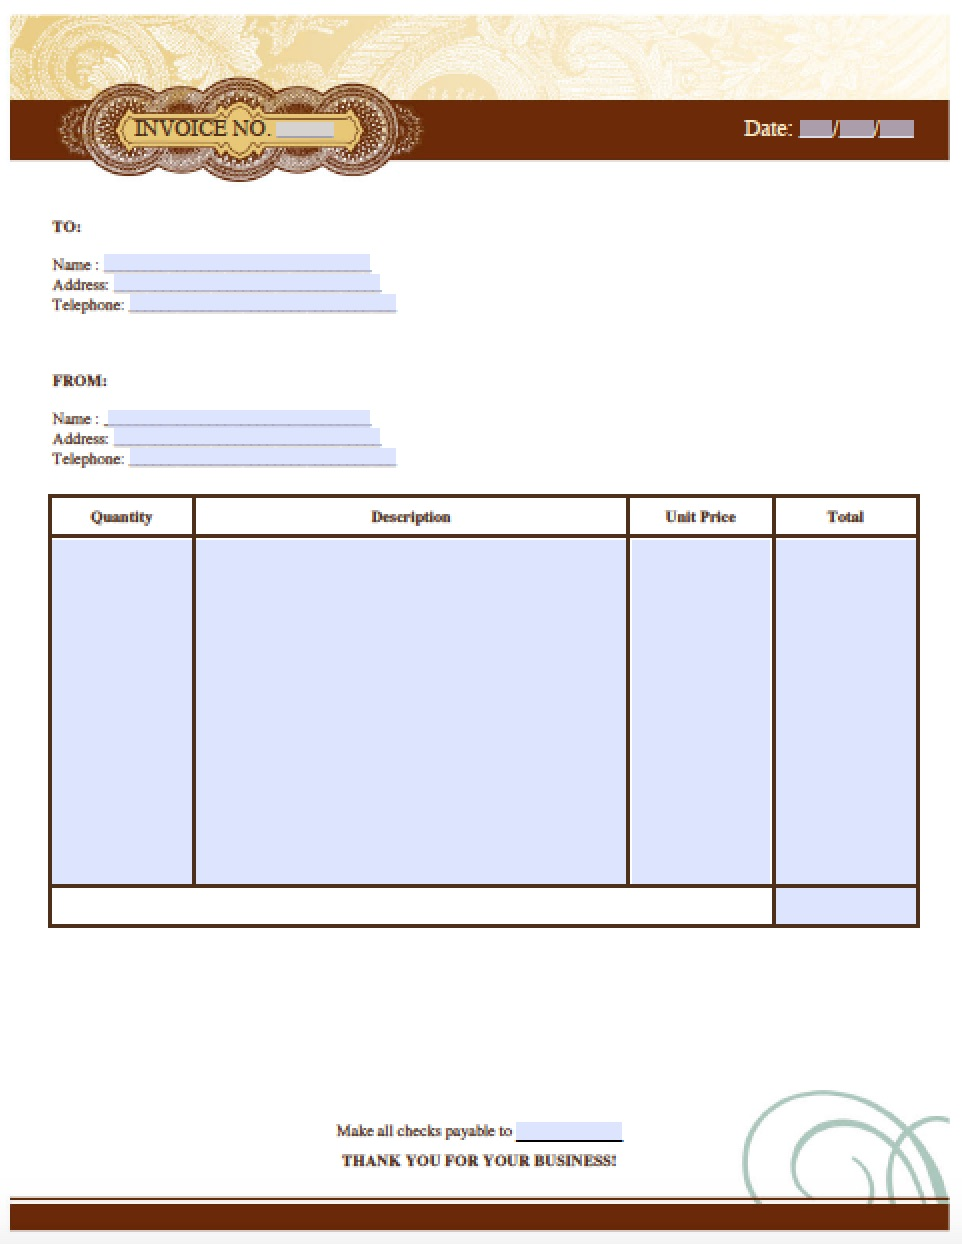 Free Artist Invoice Template Excel PDF Word Doc - Invoice sample word for service business